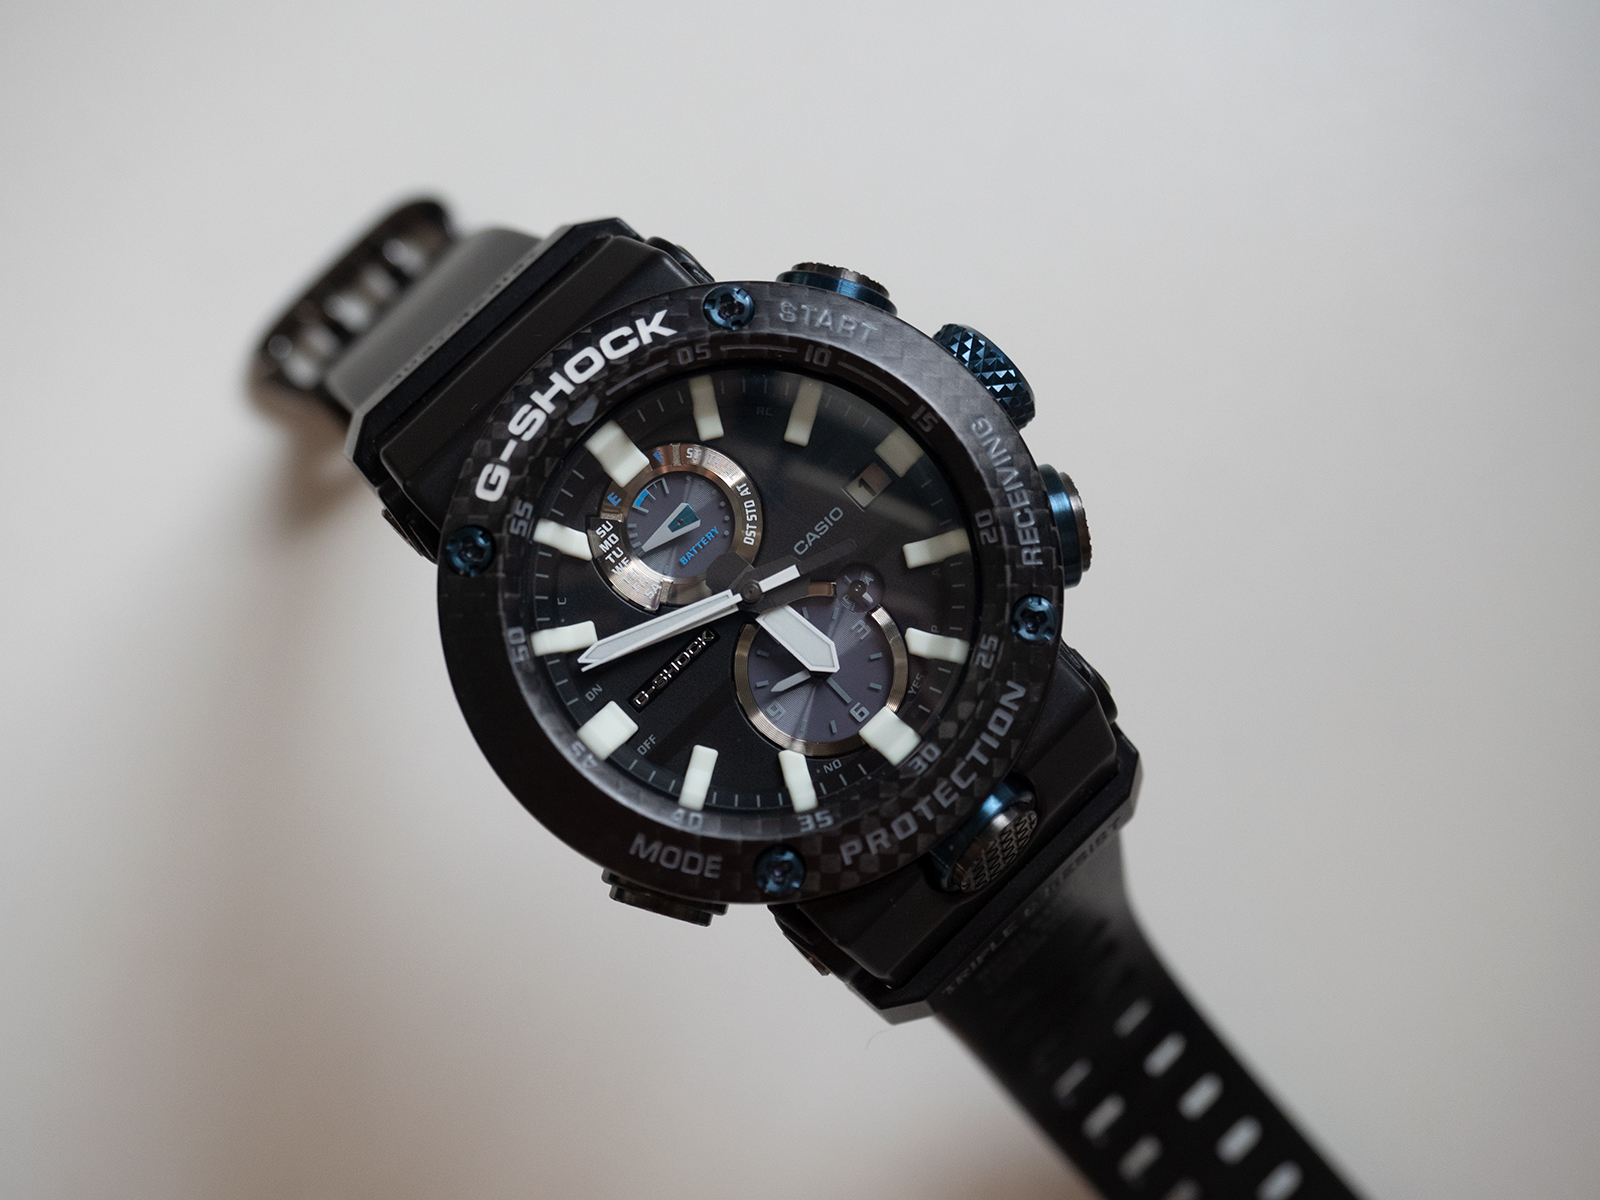 bdaf8b676c2c Hands-on with the Casio G-Shock Gravitymaster Carbon Fibre